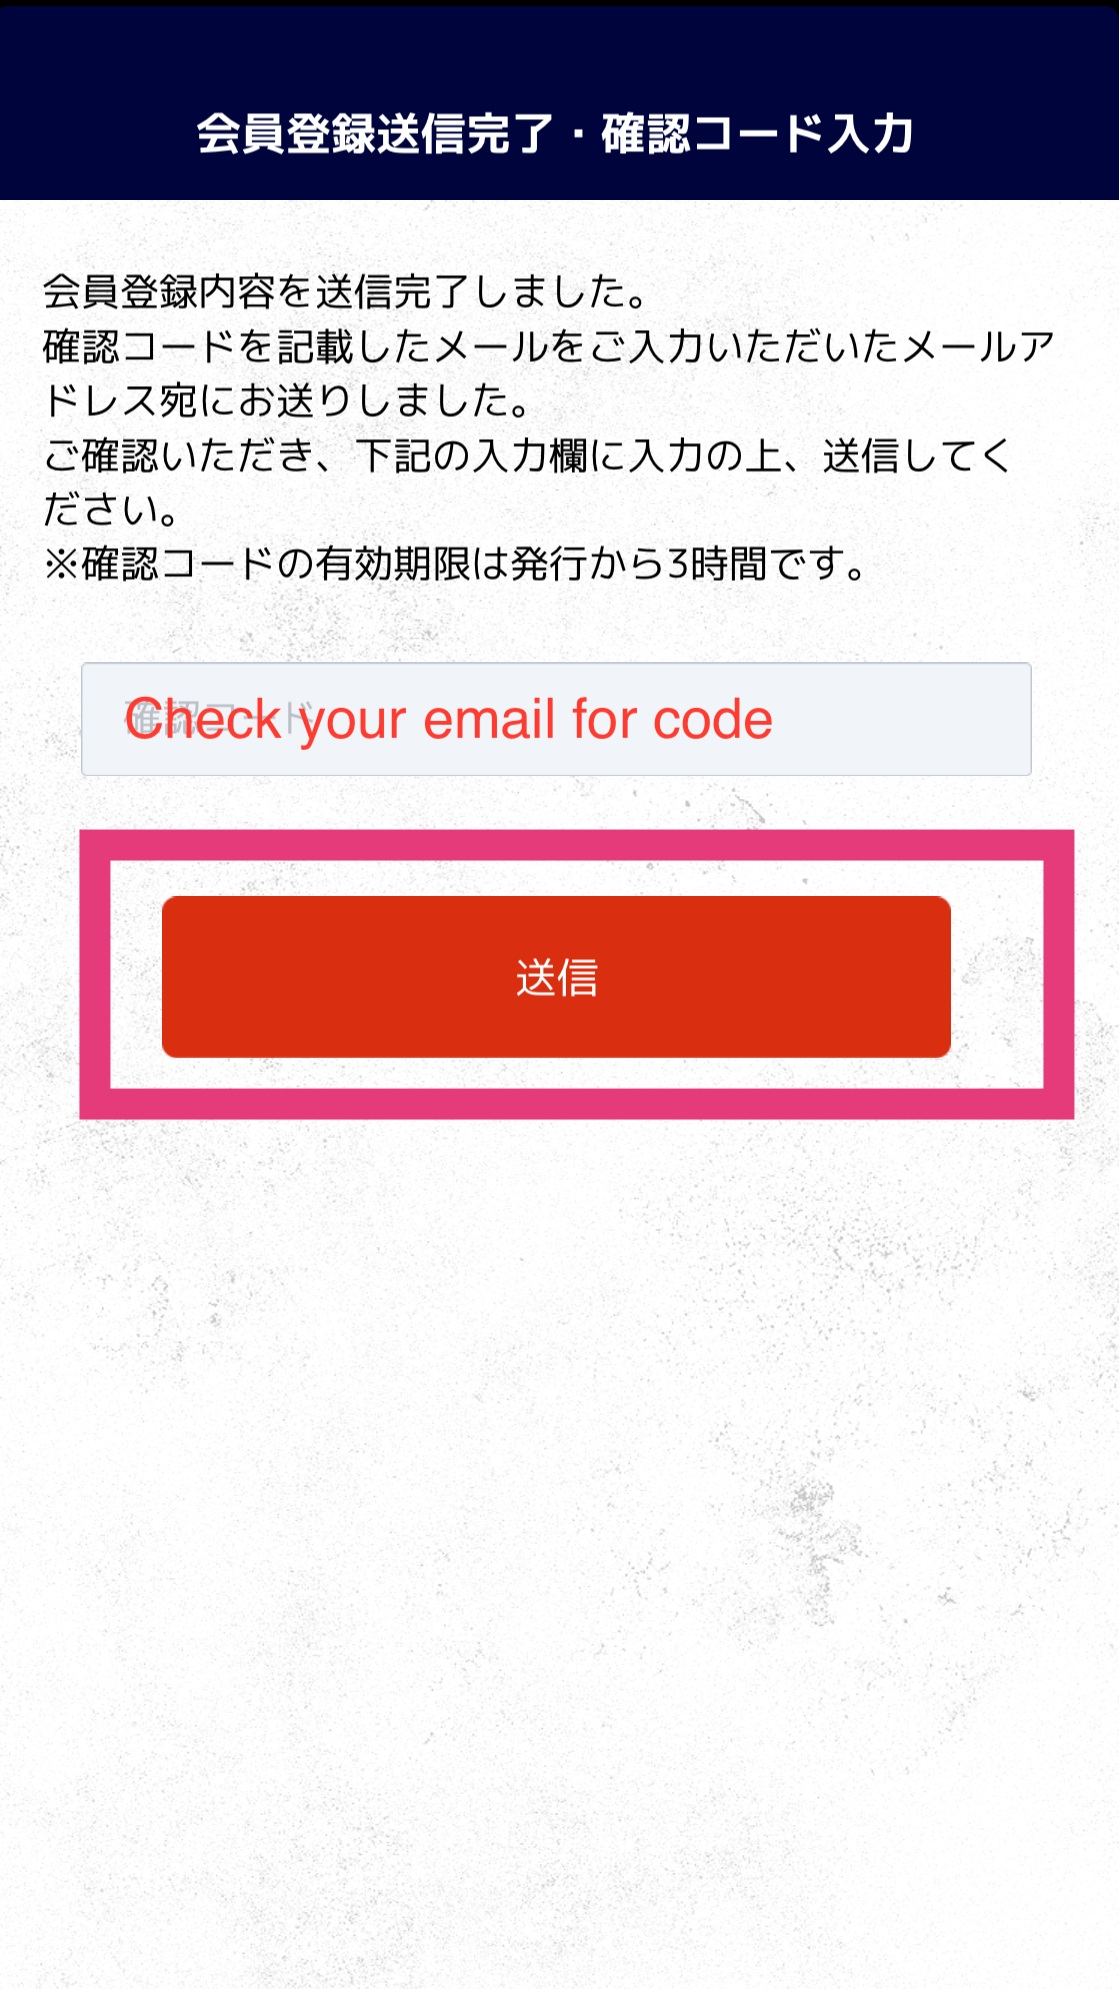 6. Fill in confirmation code from your email